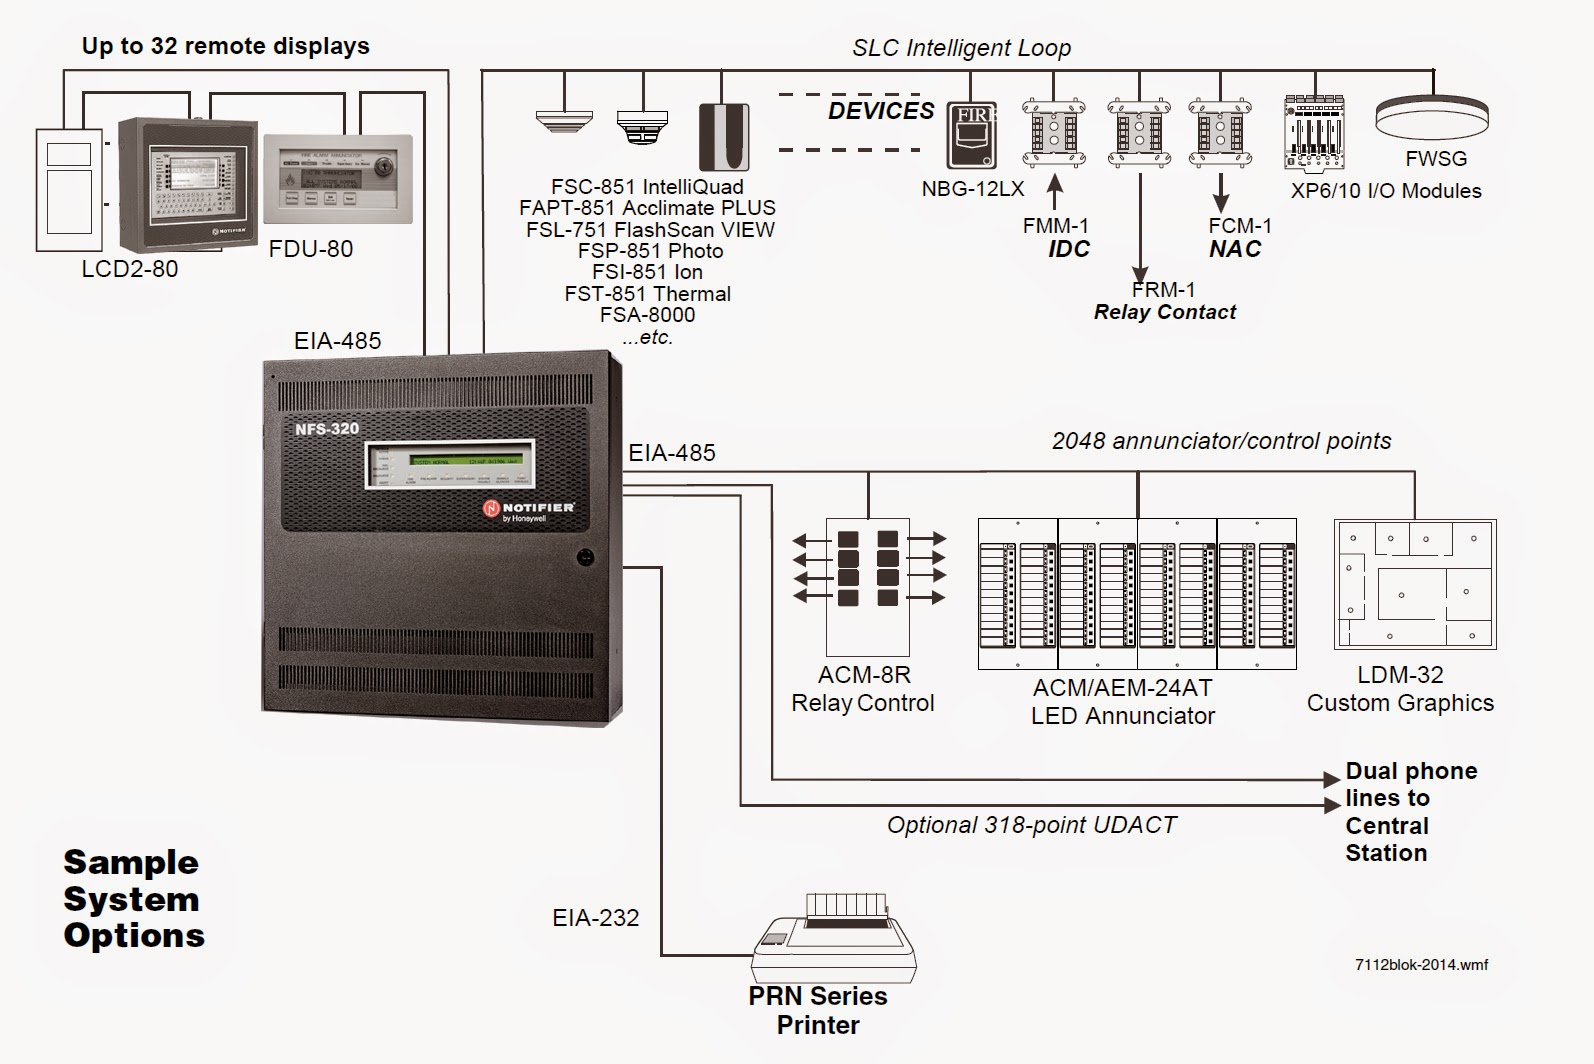 Conventional Fire Alarm Control Panel Wiring Diagram Two Switch Klaten Safety Security Solution Addresable